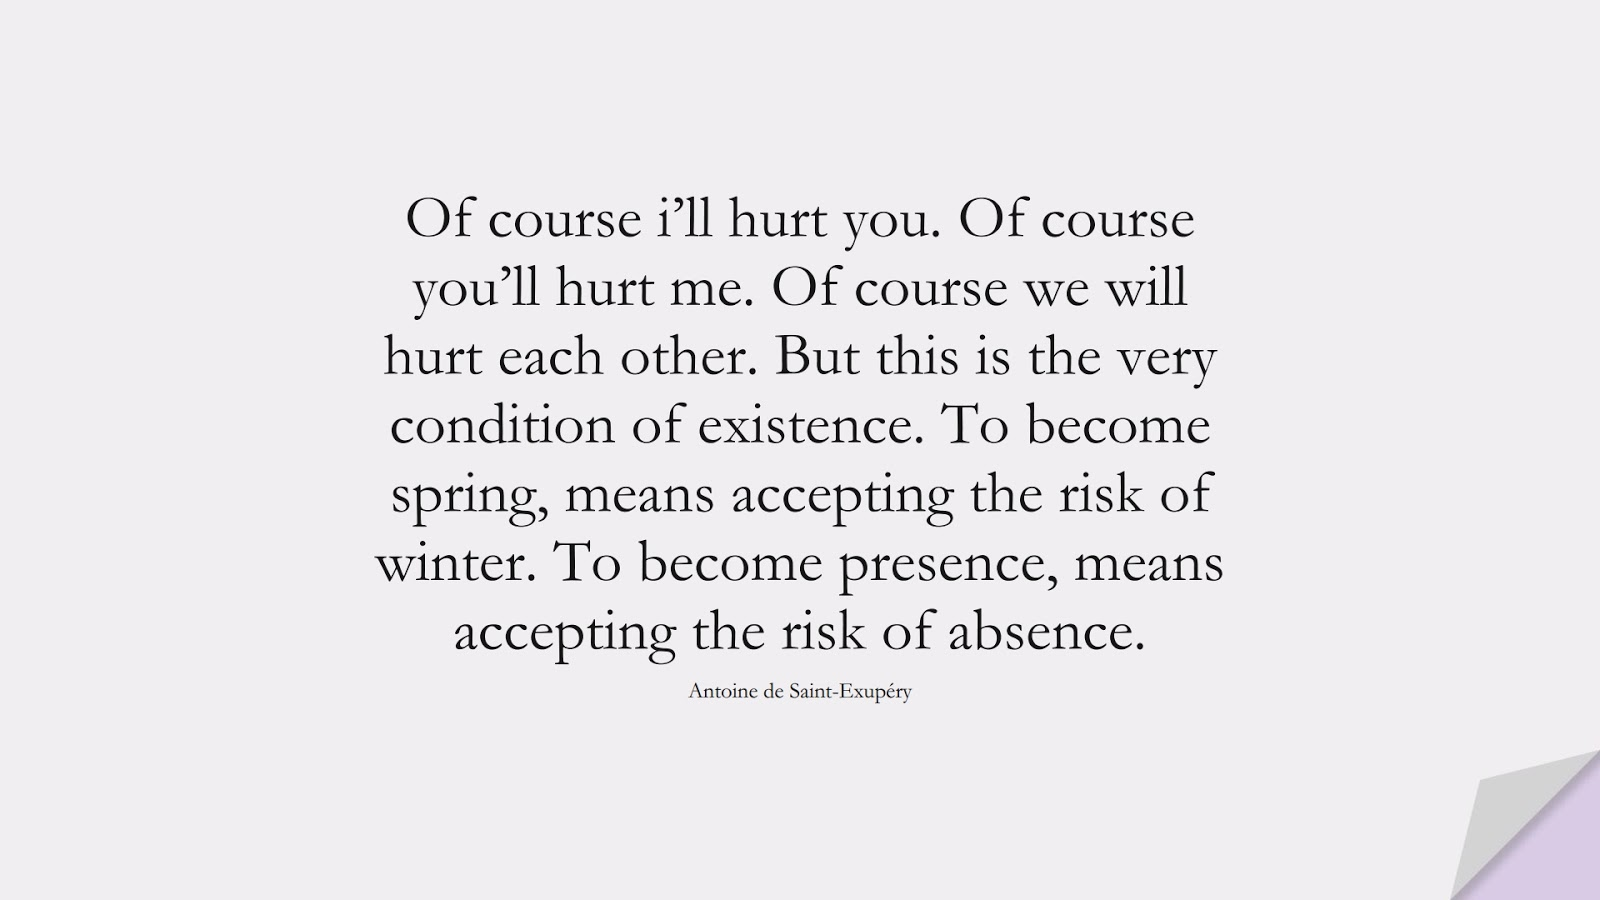 Of course i'll hurt you. Of course you'll hurt me. Of course we will hurt each other. But this is the very condition of existence. To become spring, means accepting the risk of winter. To become presence, means accepting the risk of absence. (Antoine de Saint-Exupéry);  #FearQuotes